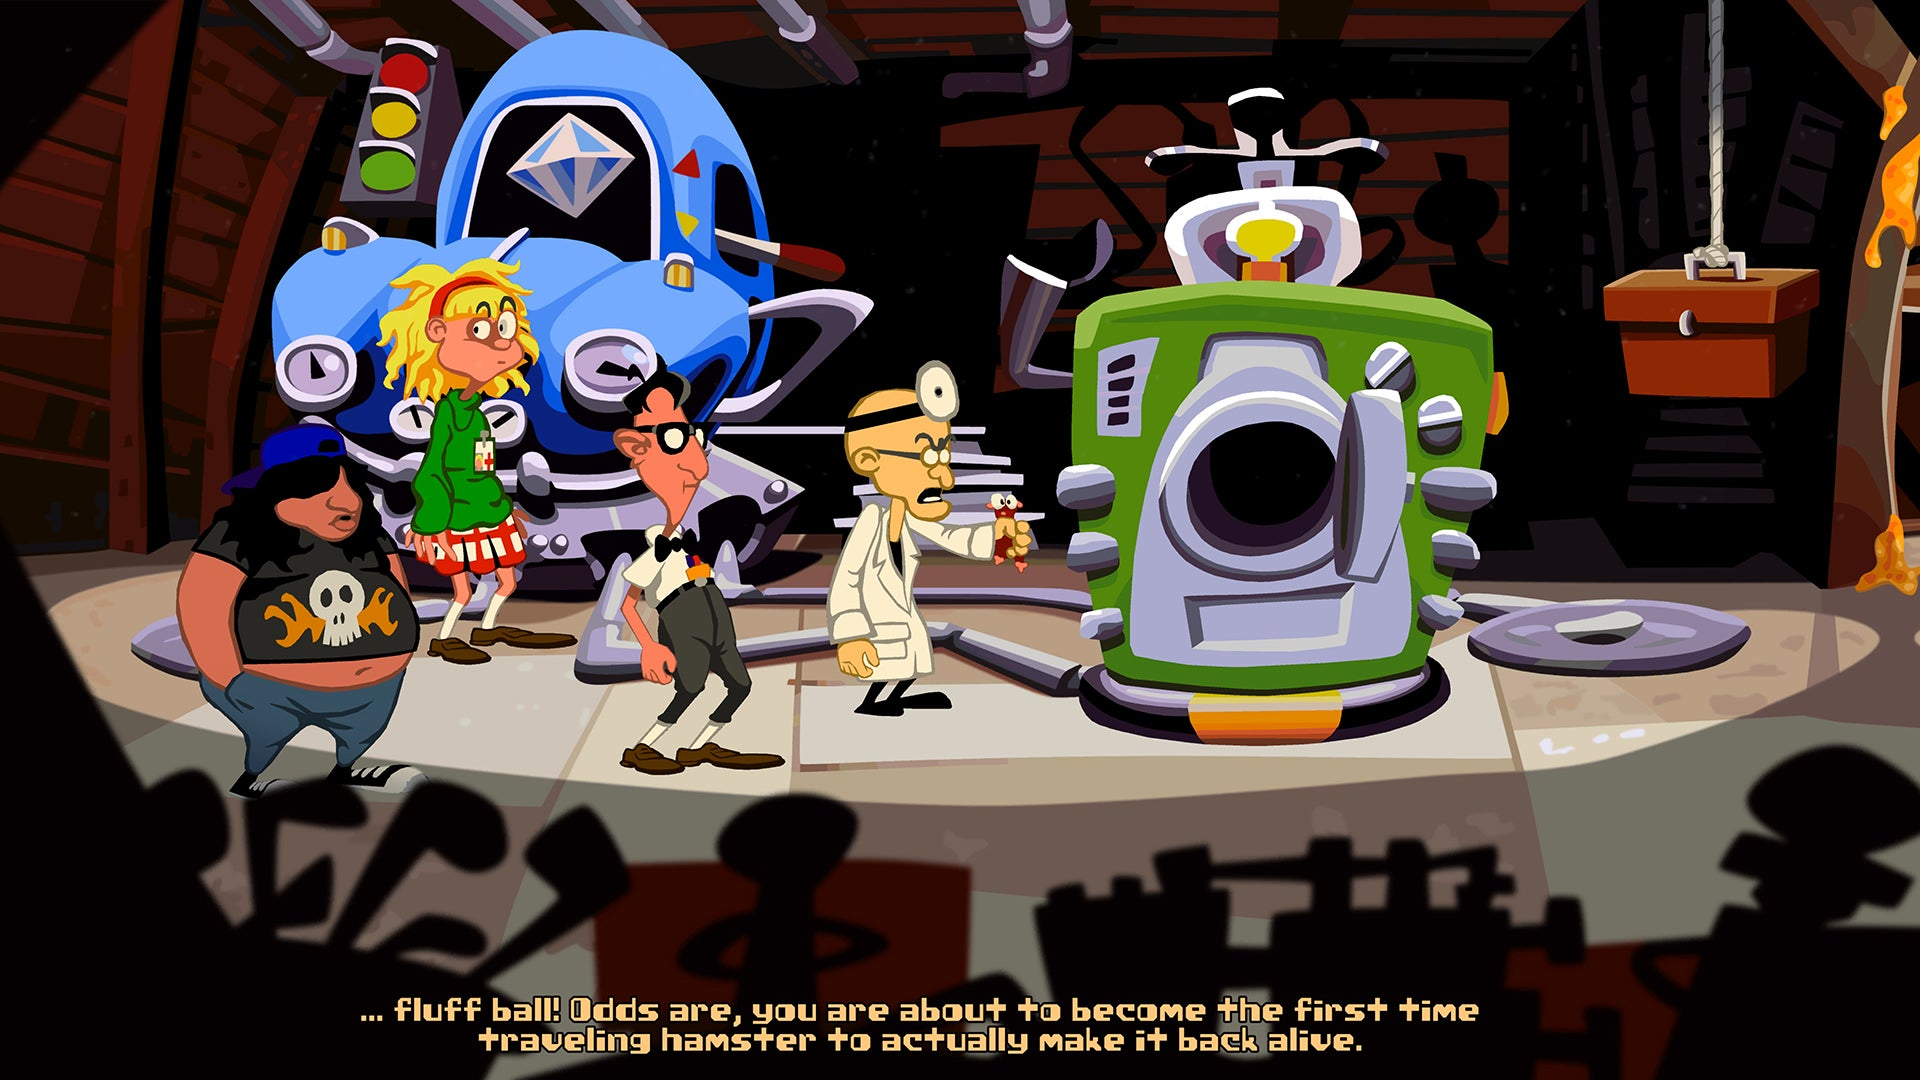 Play The Free Fan-Made Sequel To The Adventure Game Day Of The Tentacle